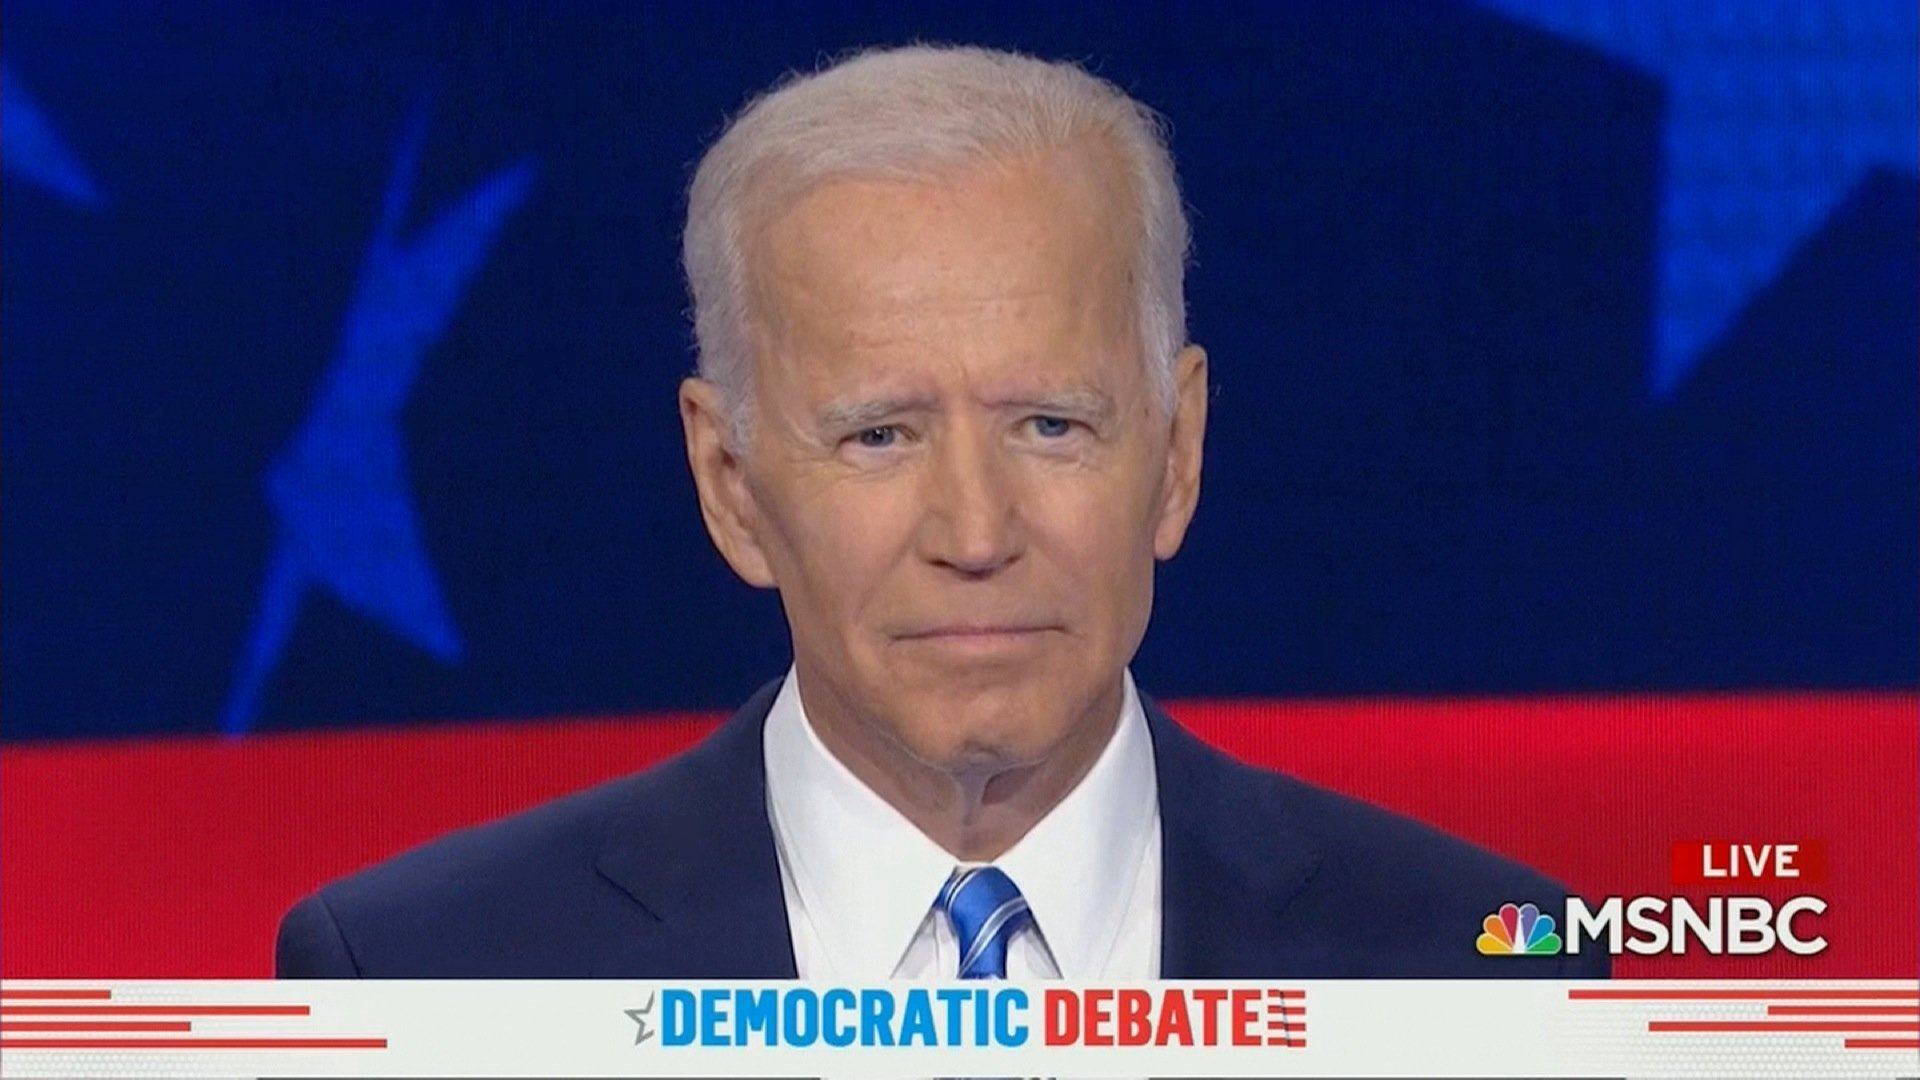 Photos: Harris confronts Biden over past efforts to block busing: 'That little girl was me'